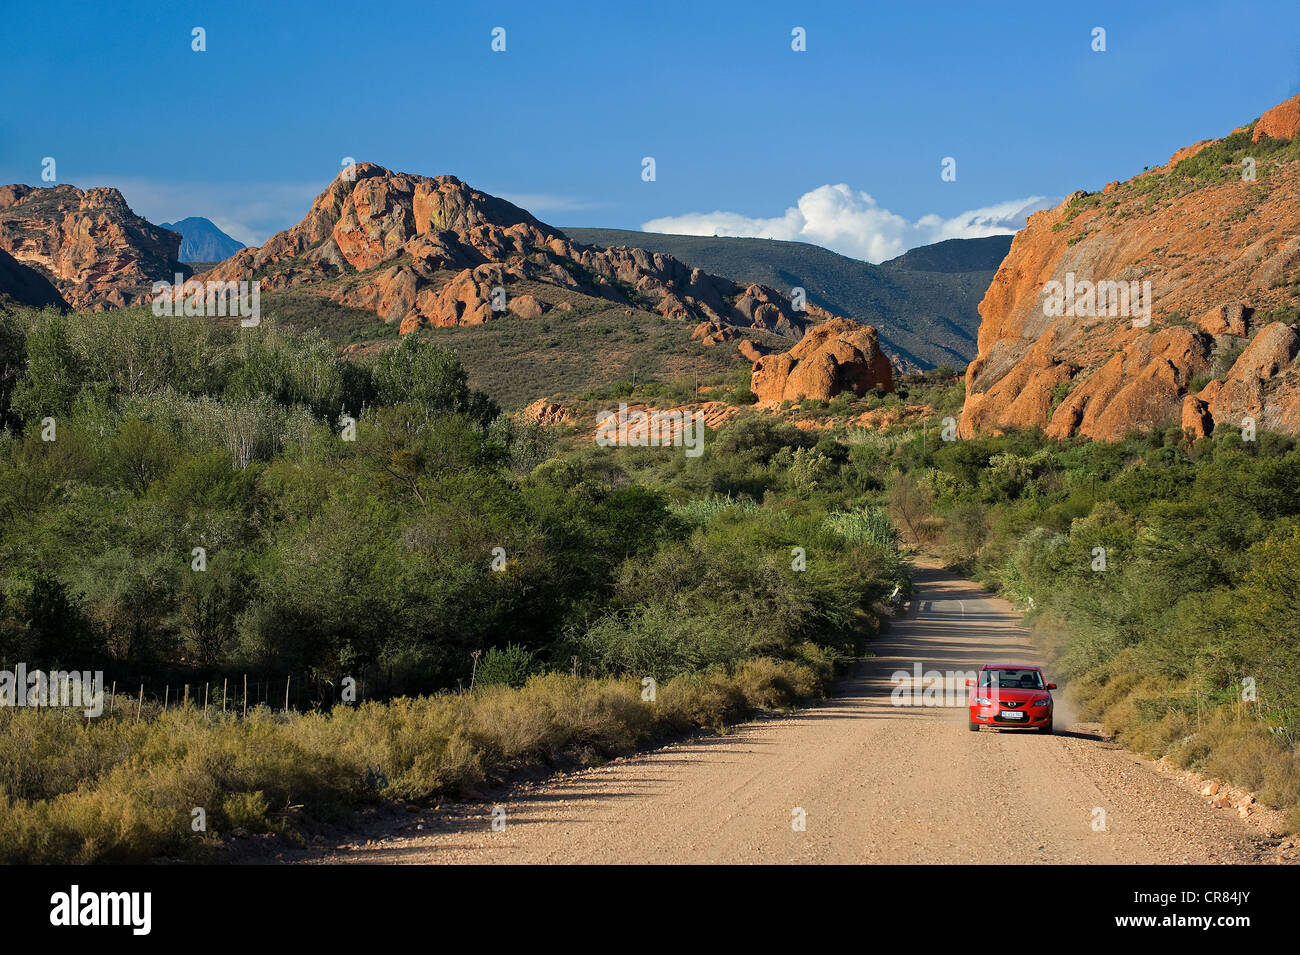 South Africa, Western Cape, Route 62, Garden Route, Little Karoo ...